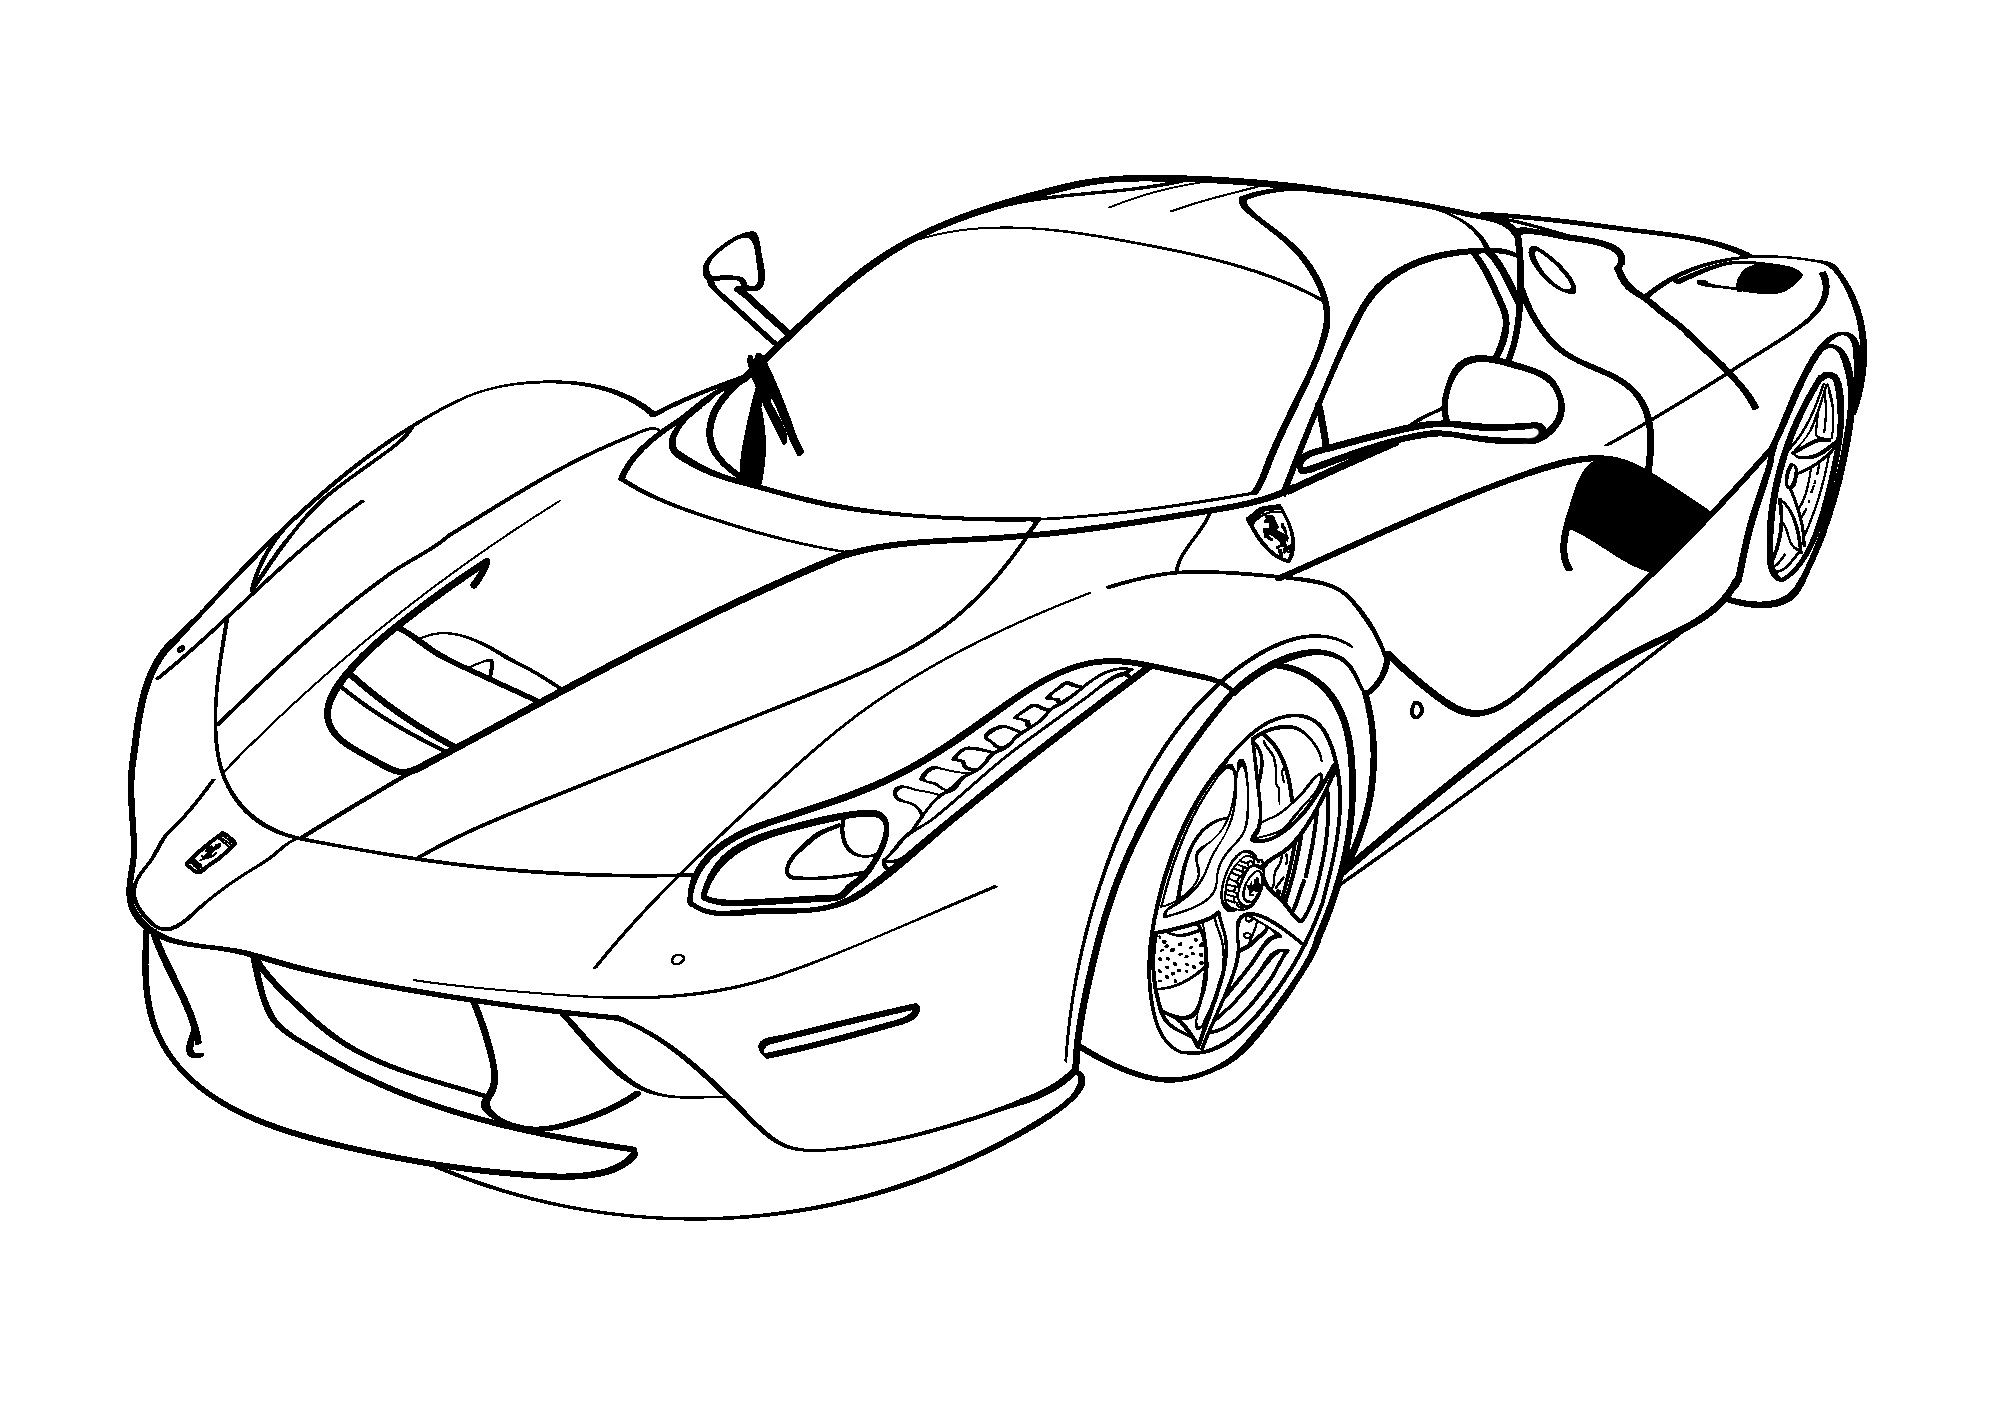 Fast And Furious Coloring Pages Ferrari Printable Shelter Cars Coloring Pages Race Car Coloring Pages Truck Coloring Pages